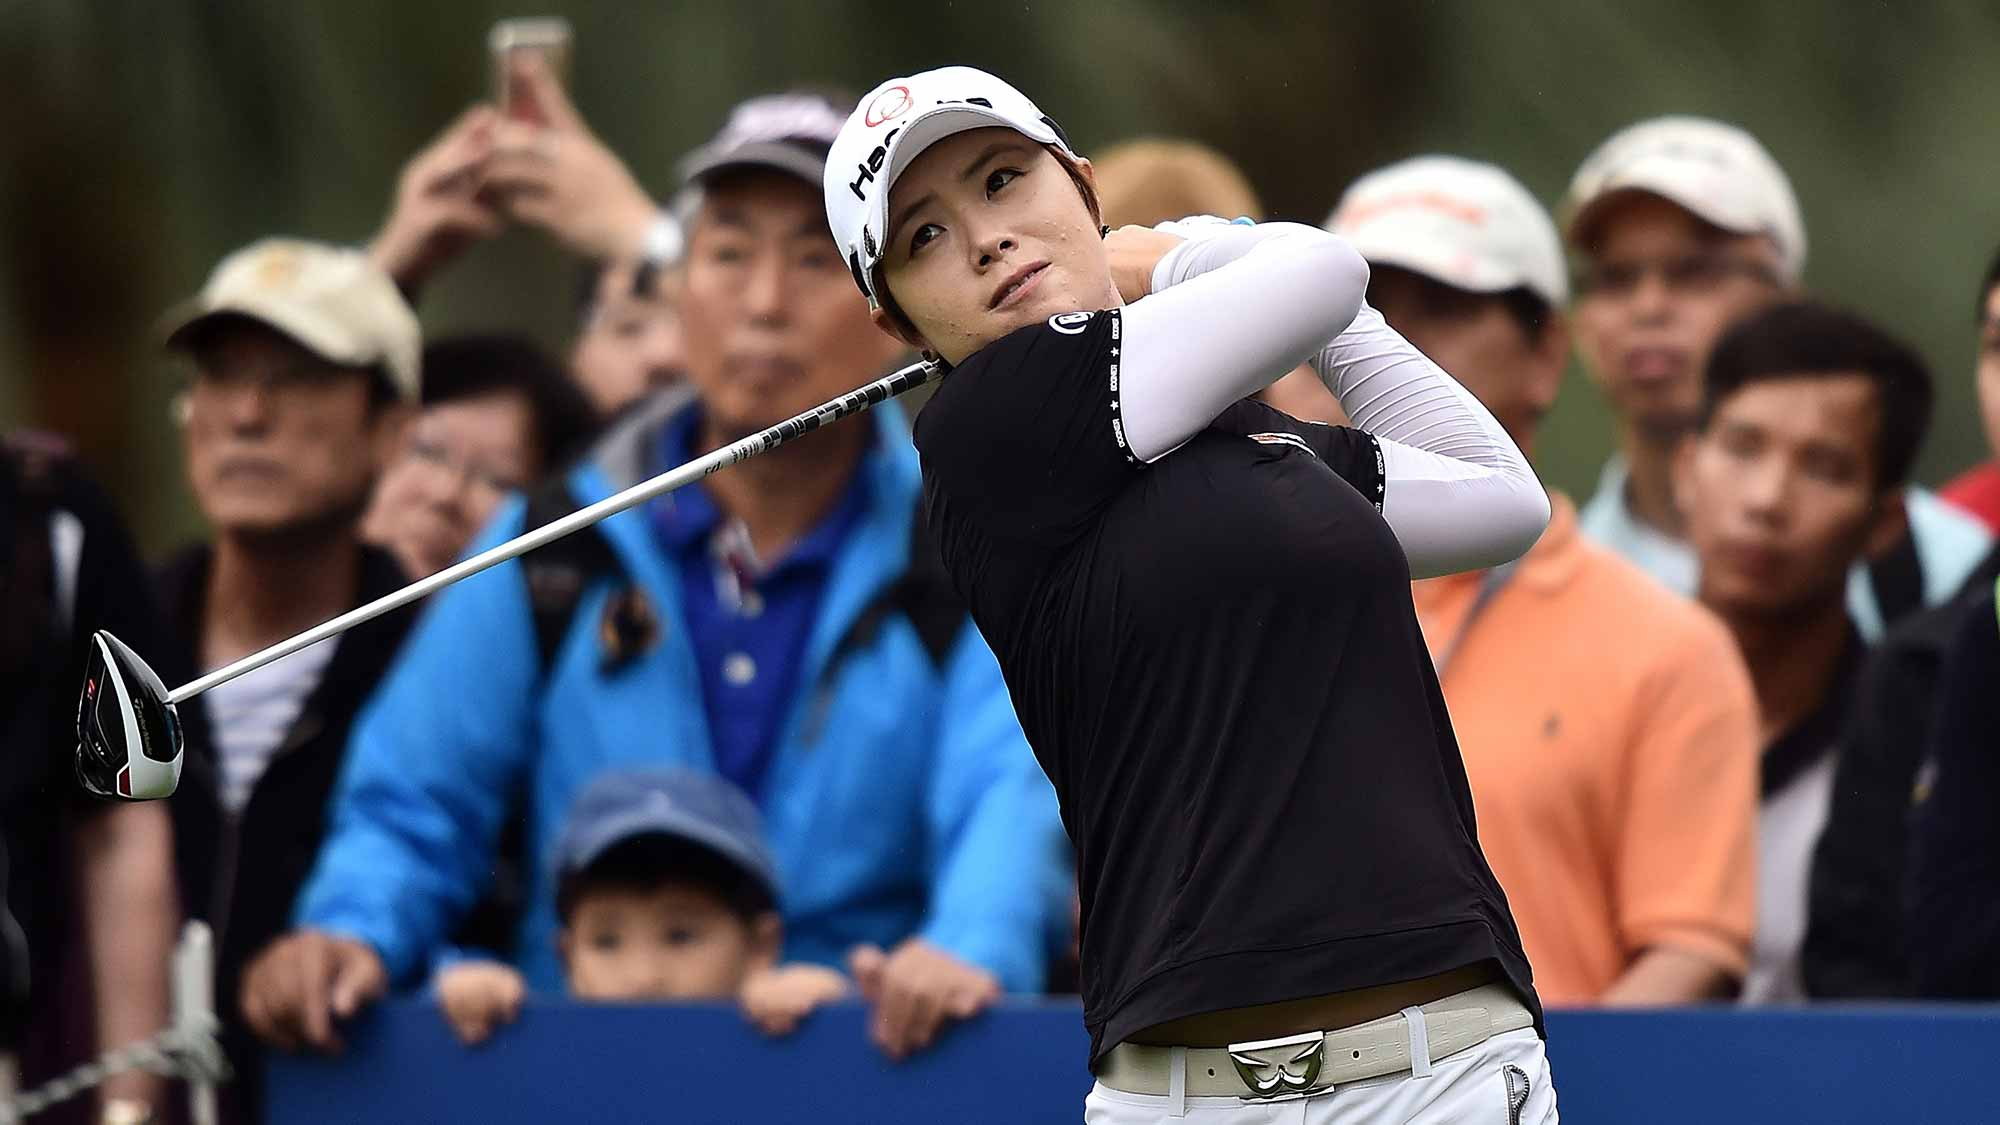 Eun-Hee Ji of South Korea plays a shot during day three of 2015 Fubon LPGA Taiwan Championship at Miramar Golf Country Club